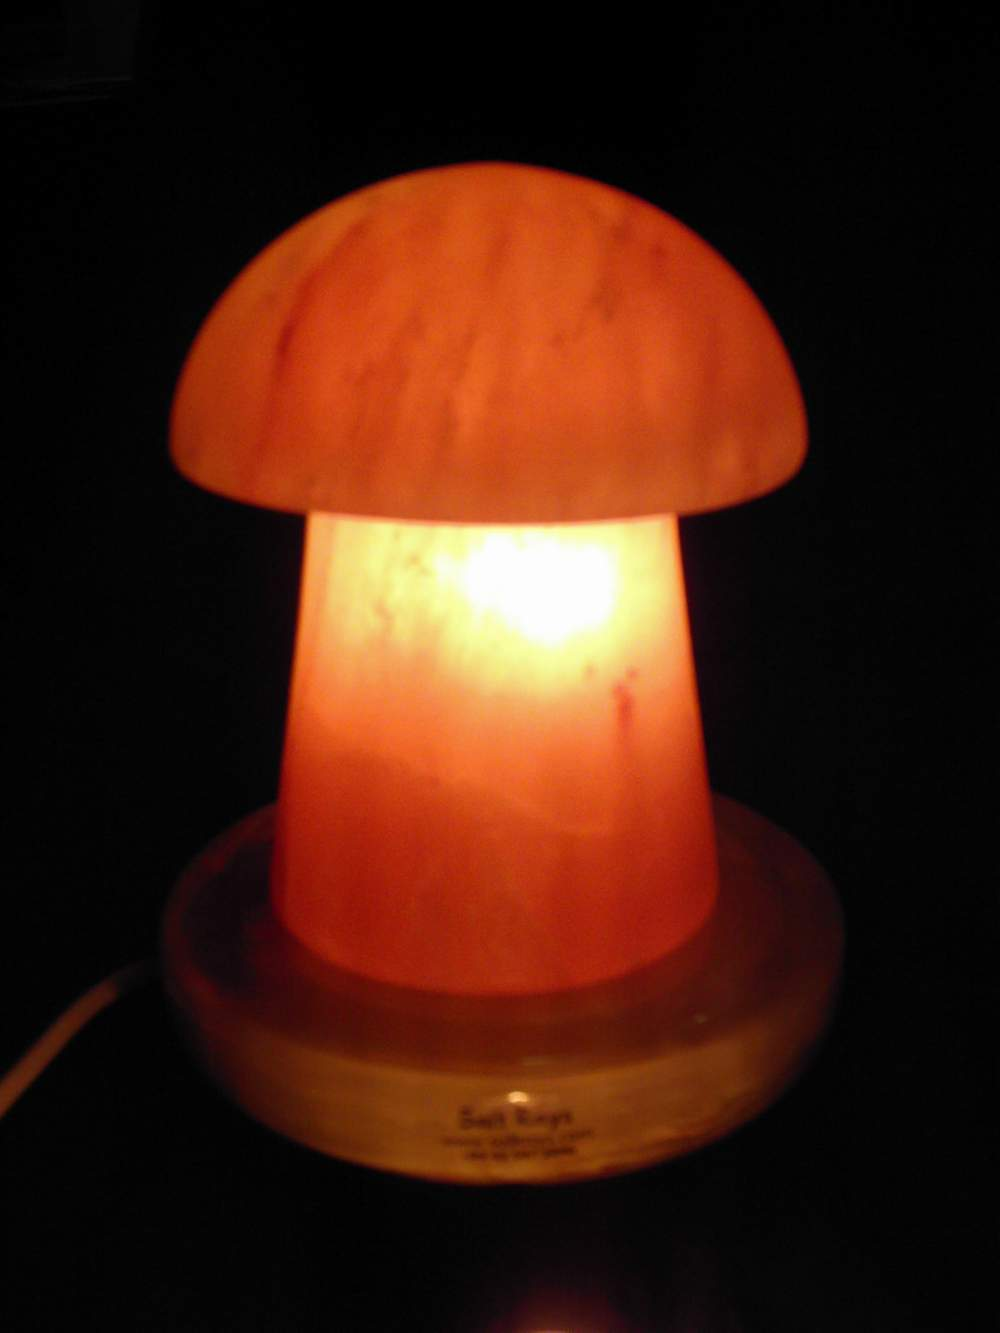 Salt Lamp Red Bulb : Fashion Designing: Salt Lamps and Products: